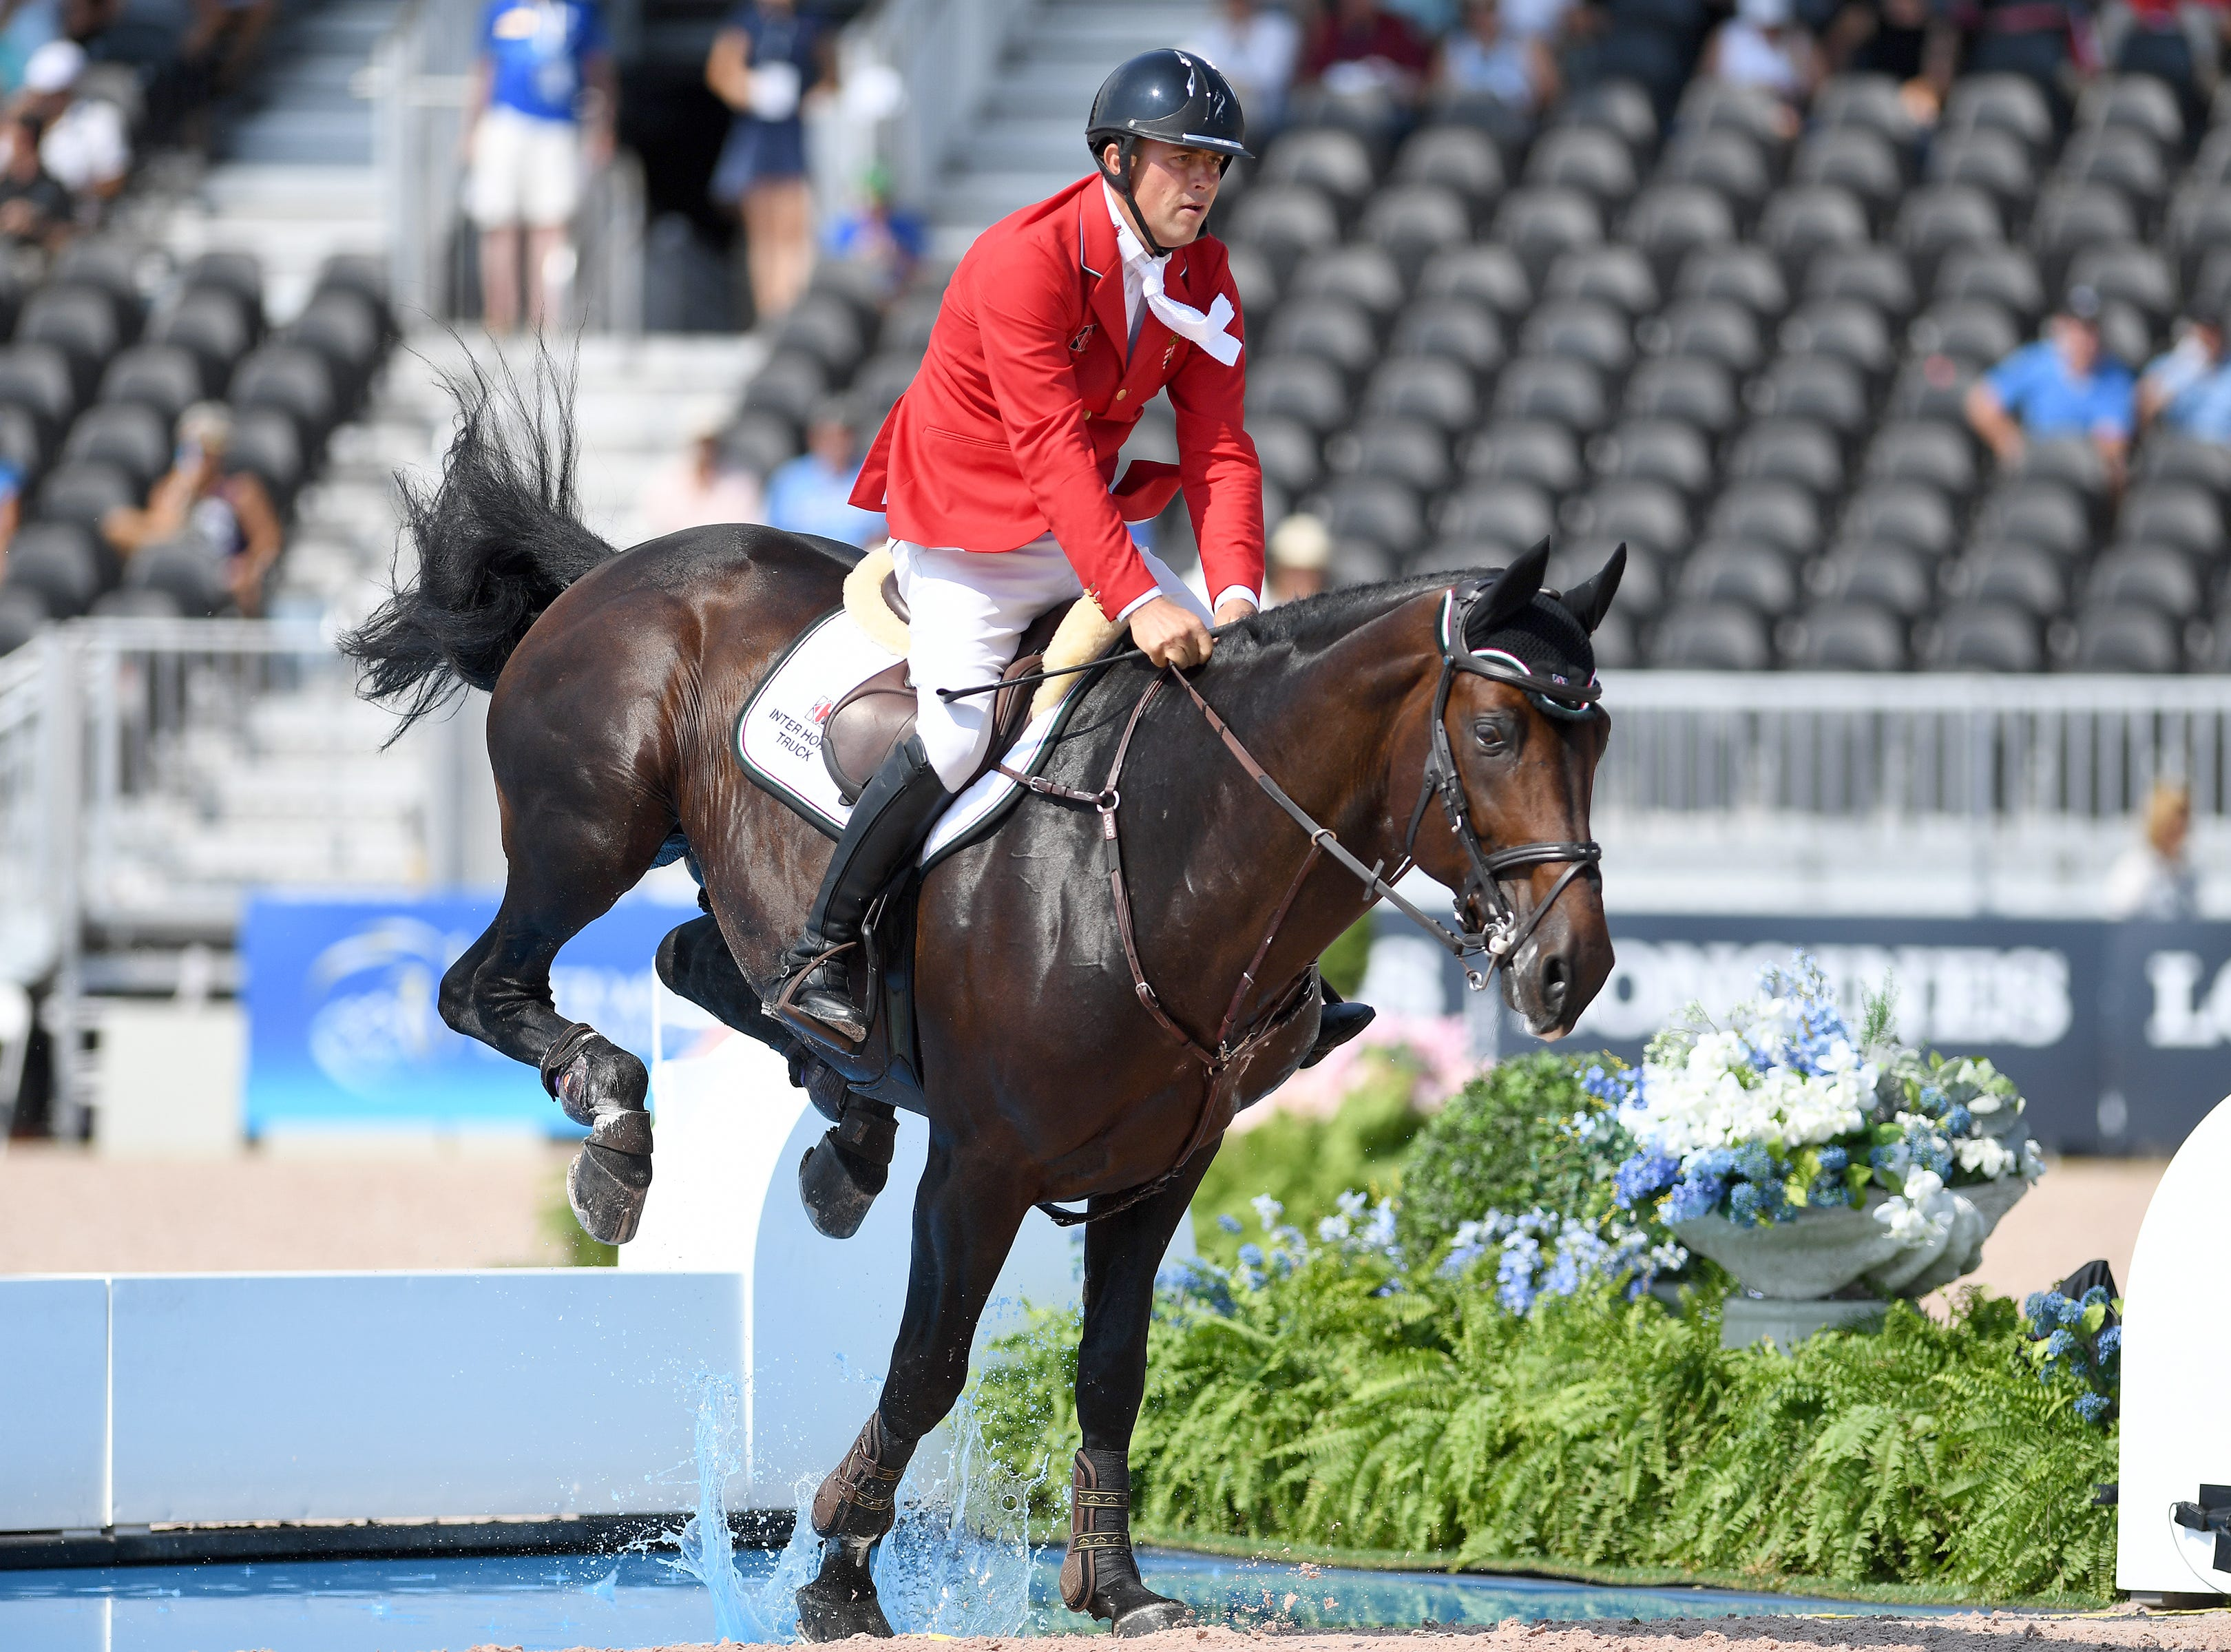 Hungary's Szabolcs Krucso, on Chacco Blue II, competes in the team jumping competition of the FEI World Equestrian Games at the Tryon International Equestrian Center on Sept. 20, 2018.